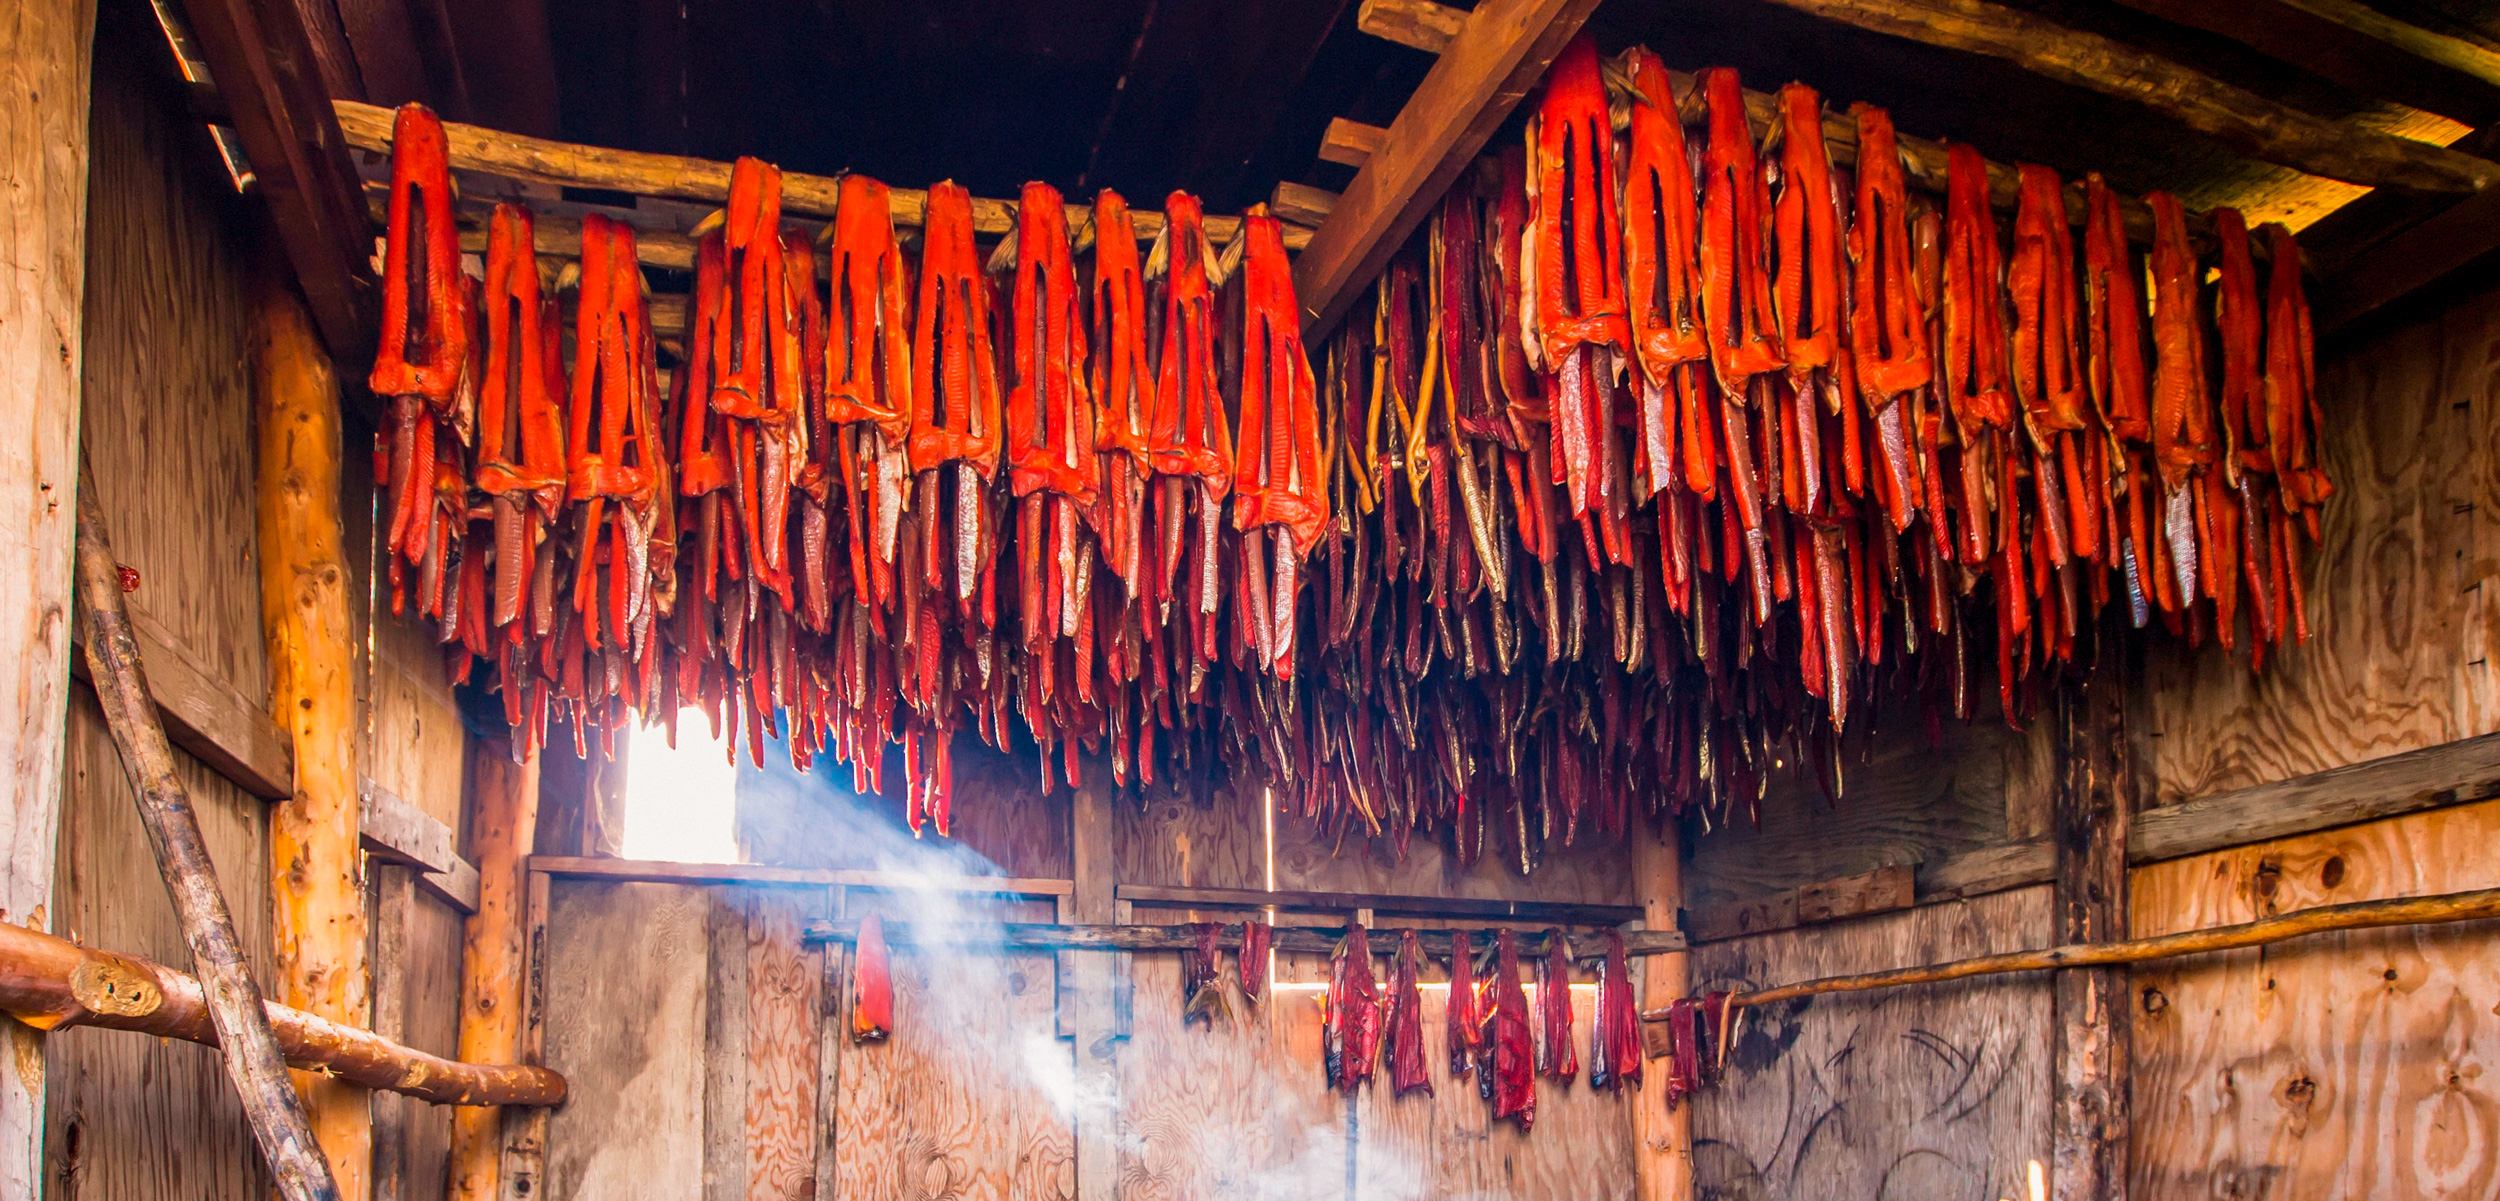 Strips Of Sockeye Salmon Hanging In A Large Smoker